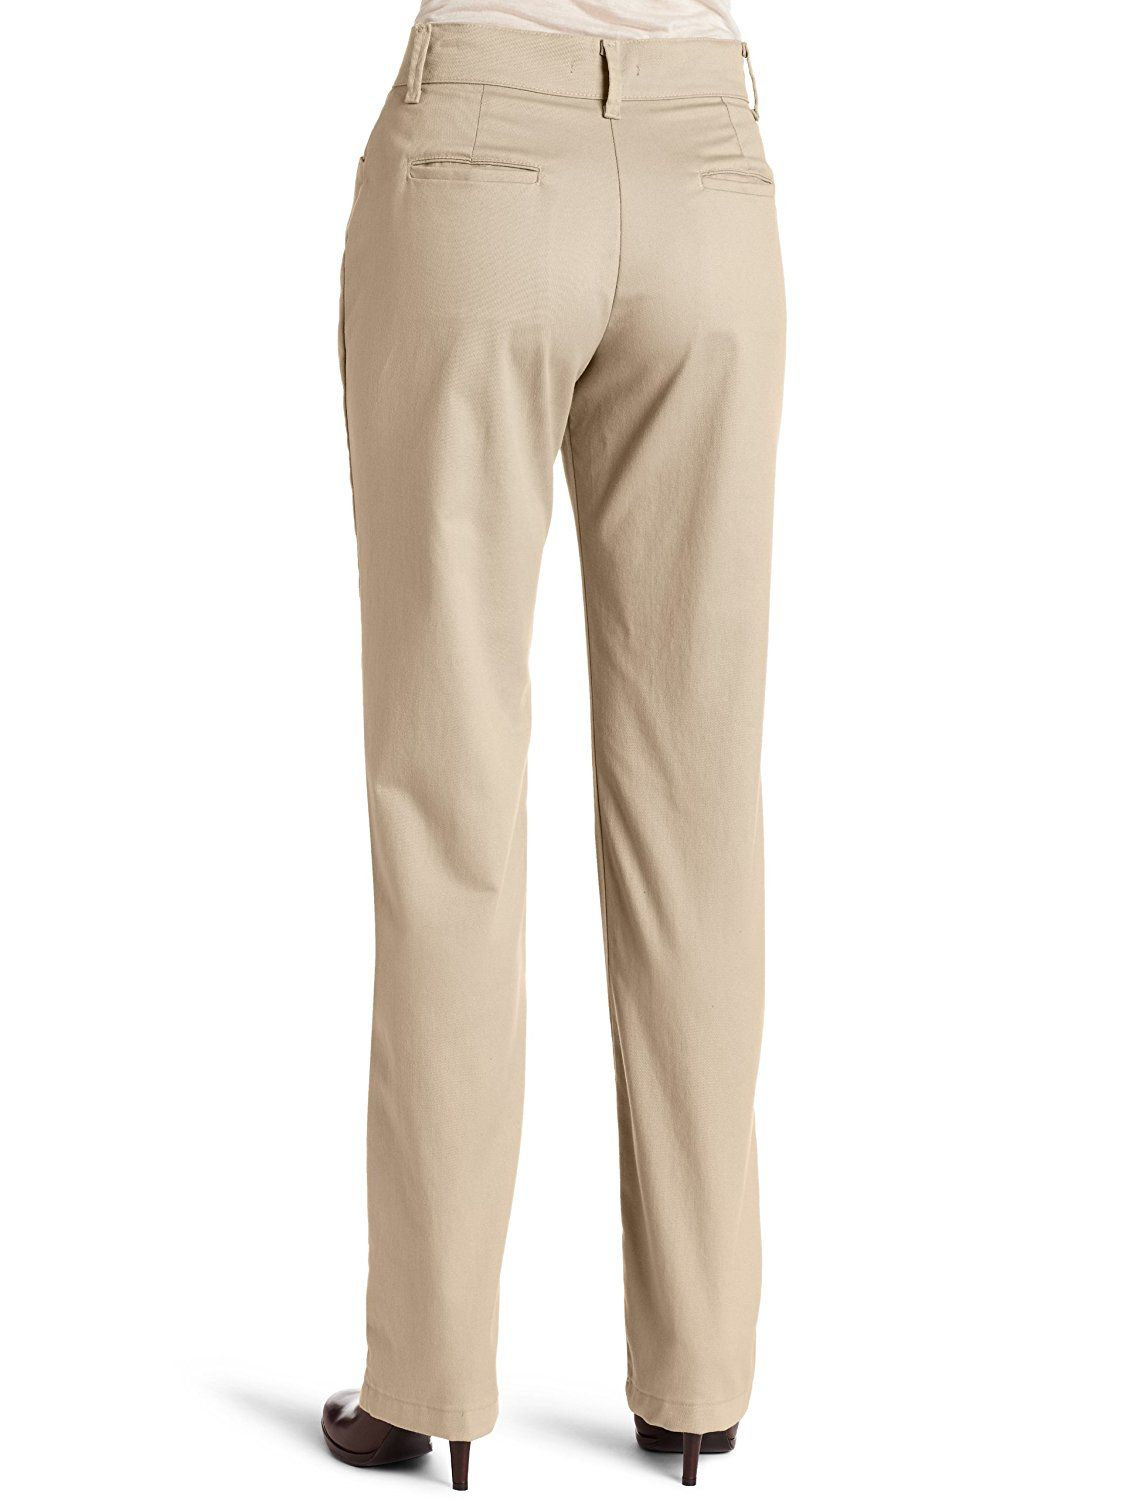 Lee womens relaxed fit plain front straight leg pant